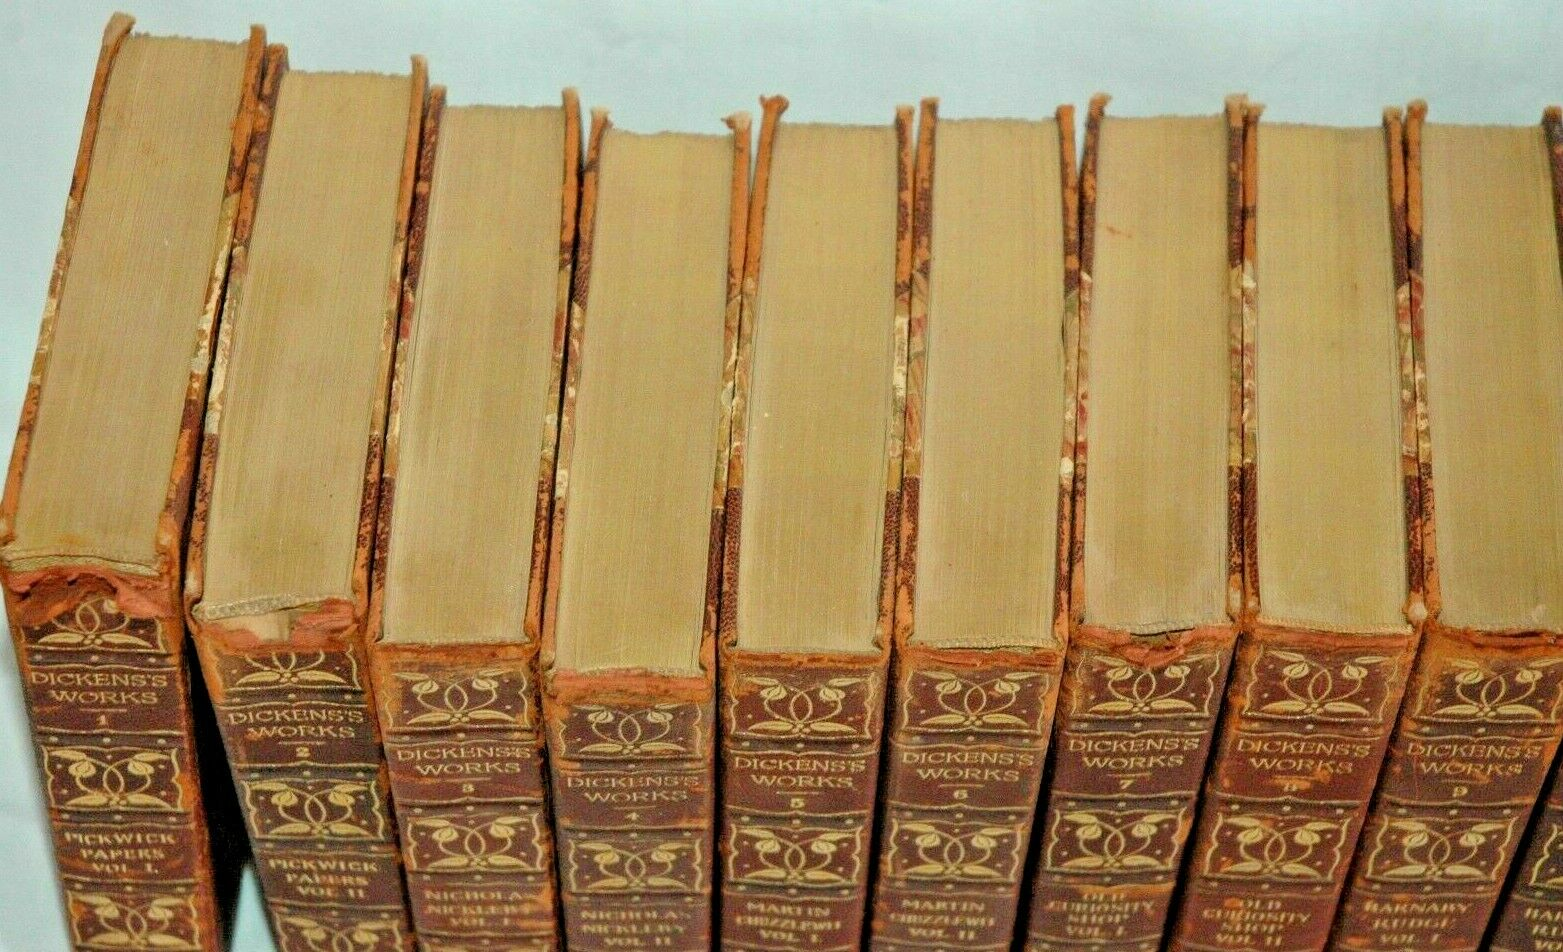 The Complete Works of Charles Dickens – 30 Vol Set – c.1900 Ltd Edition of 1000 |